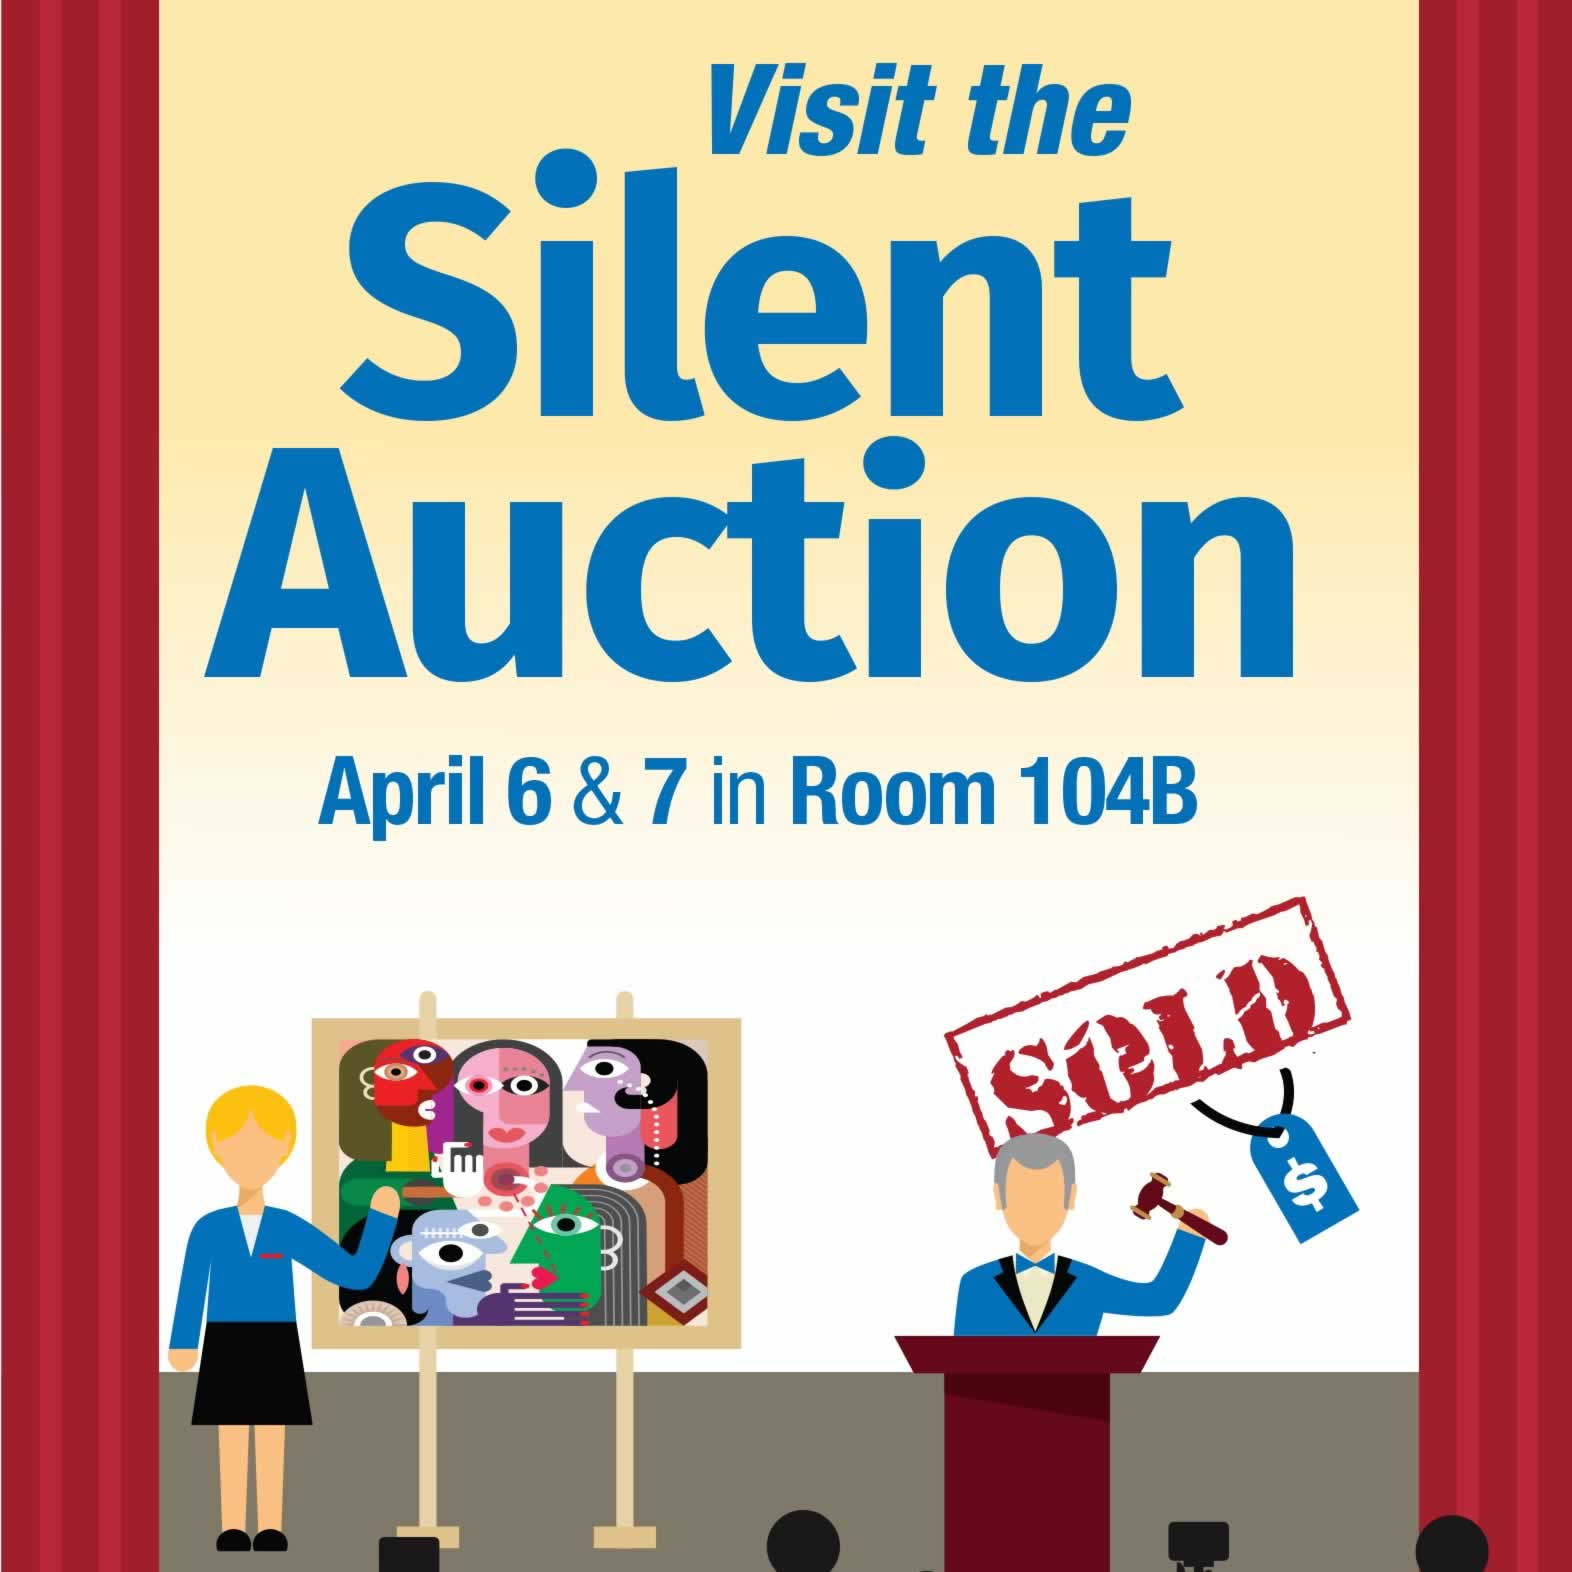 Visit the Silent Auction, April 6 & 7